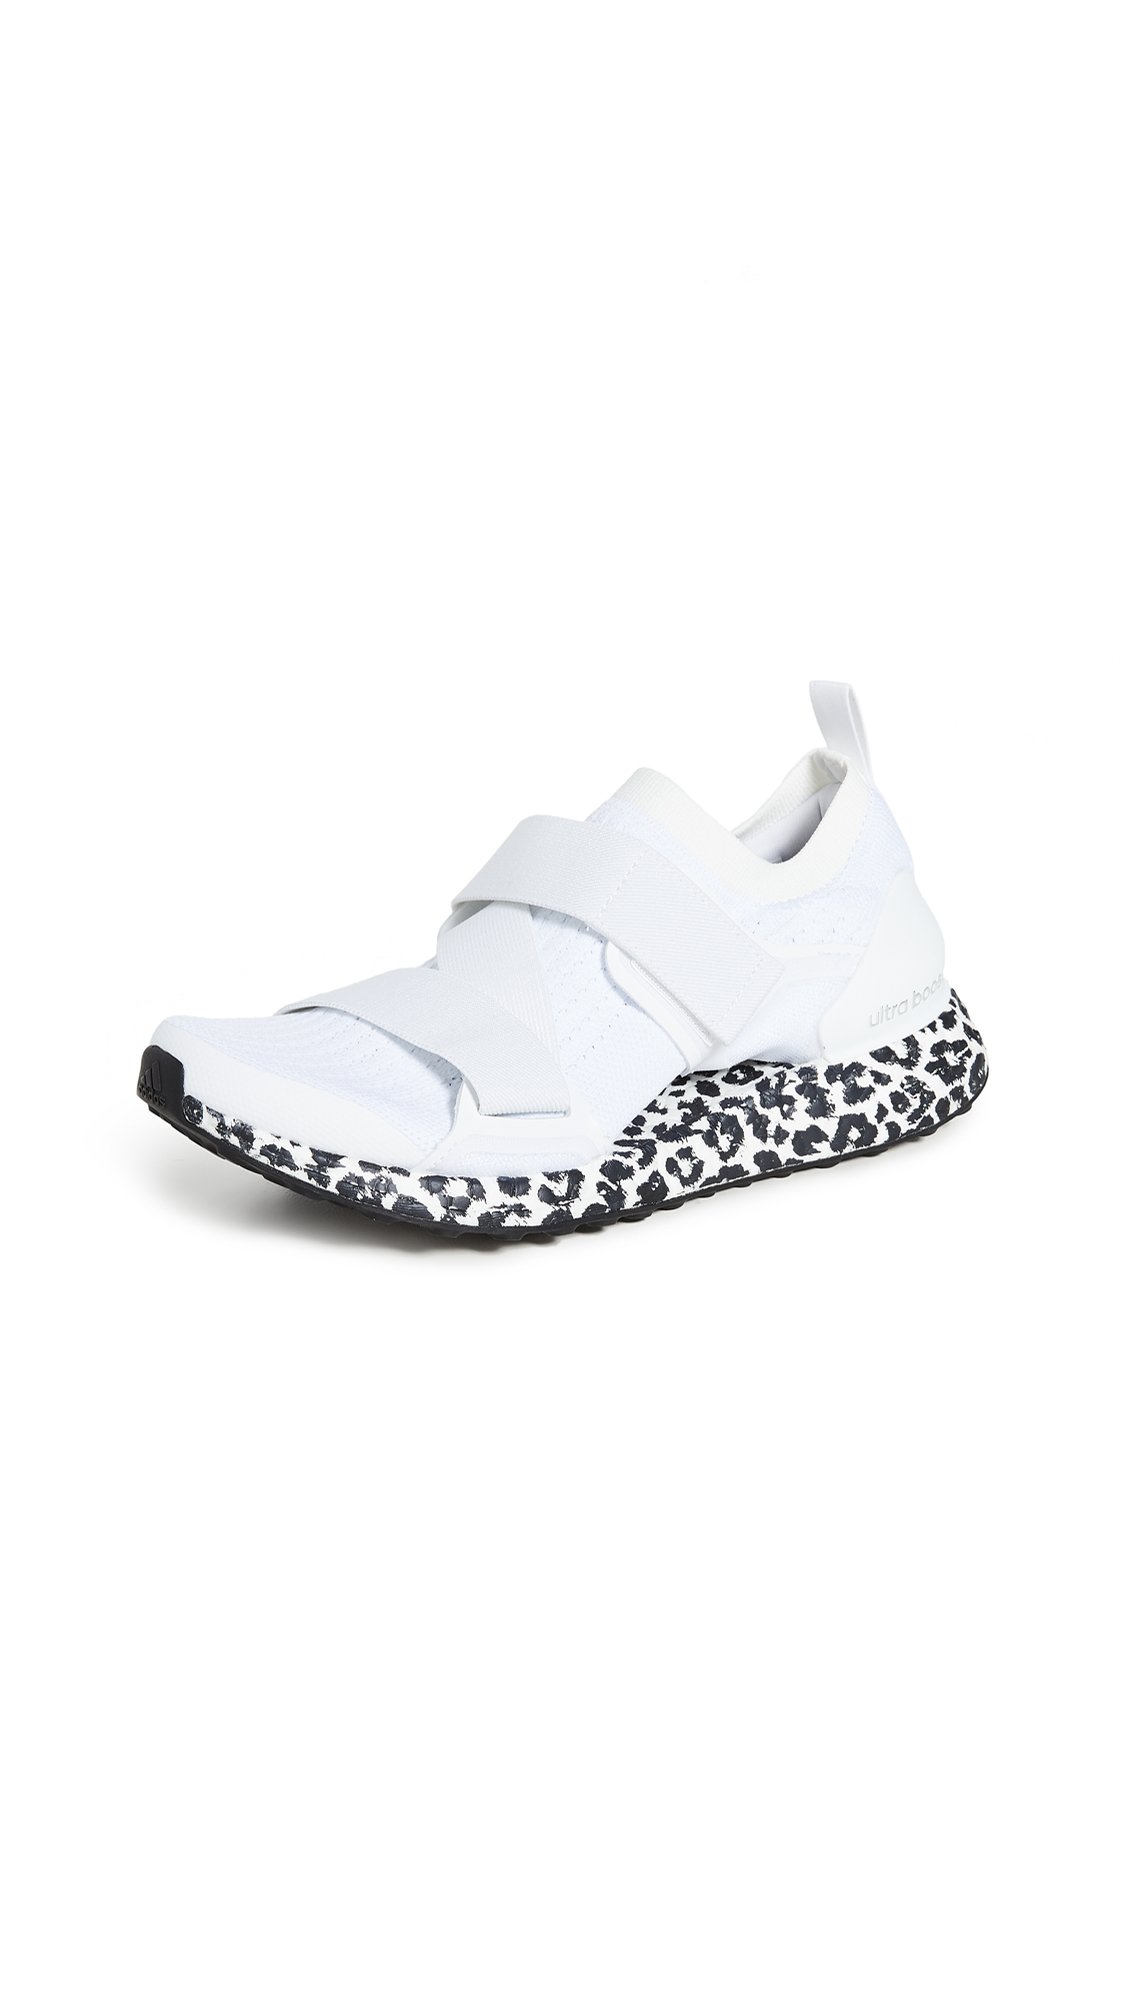 adidas by Stella McCartney Ultraboost X Sneakers - 20% Off Sale